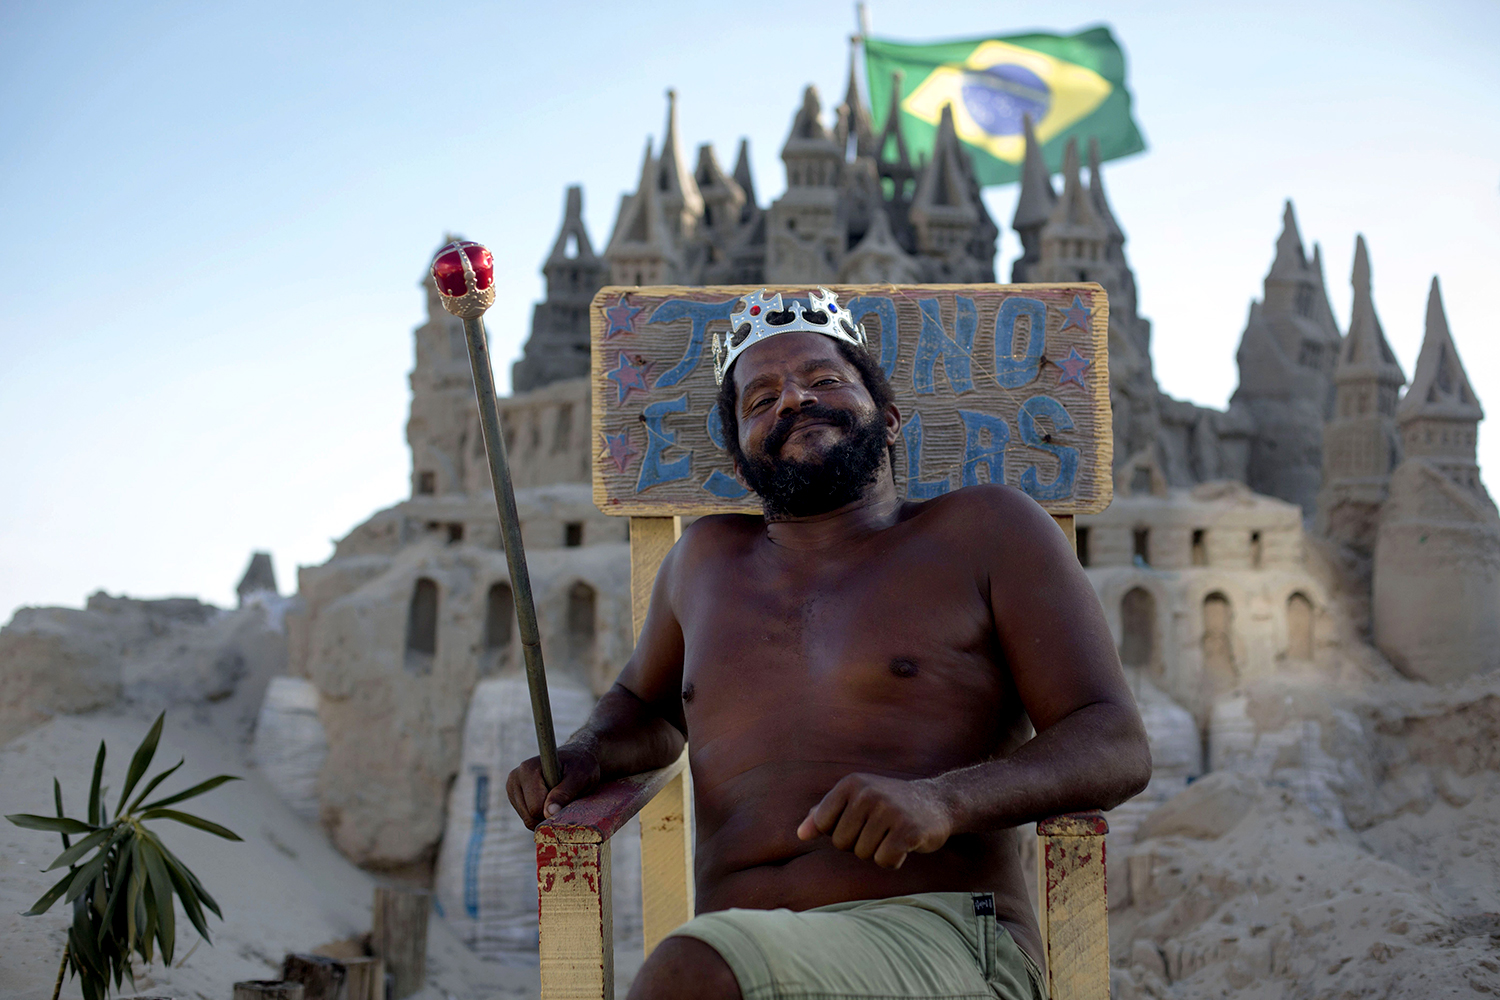 This Man Has Lived In A Sand Castle For Over 20 Years sand castle man throne GettyImages 907299022